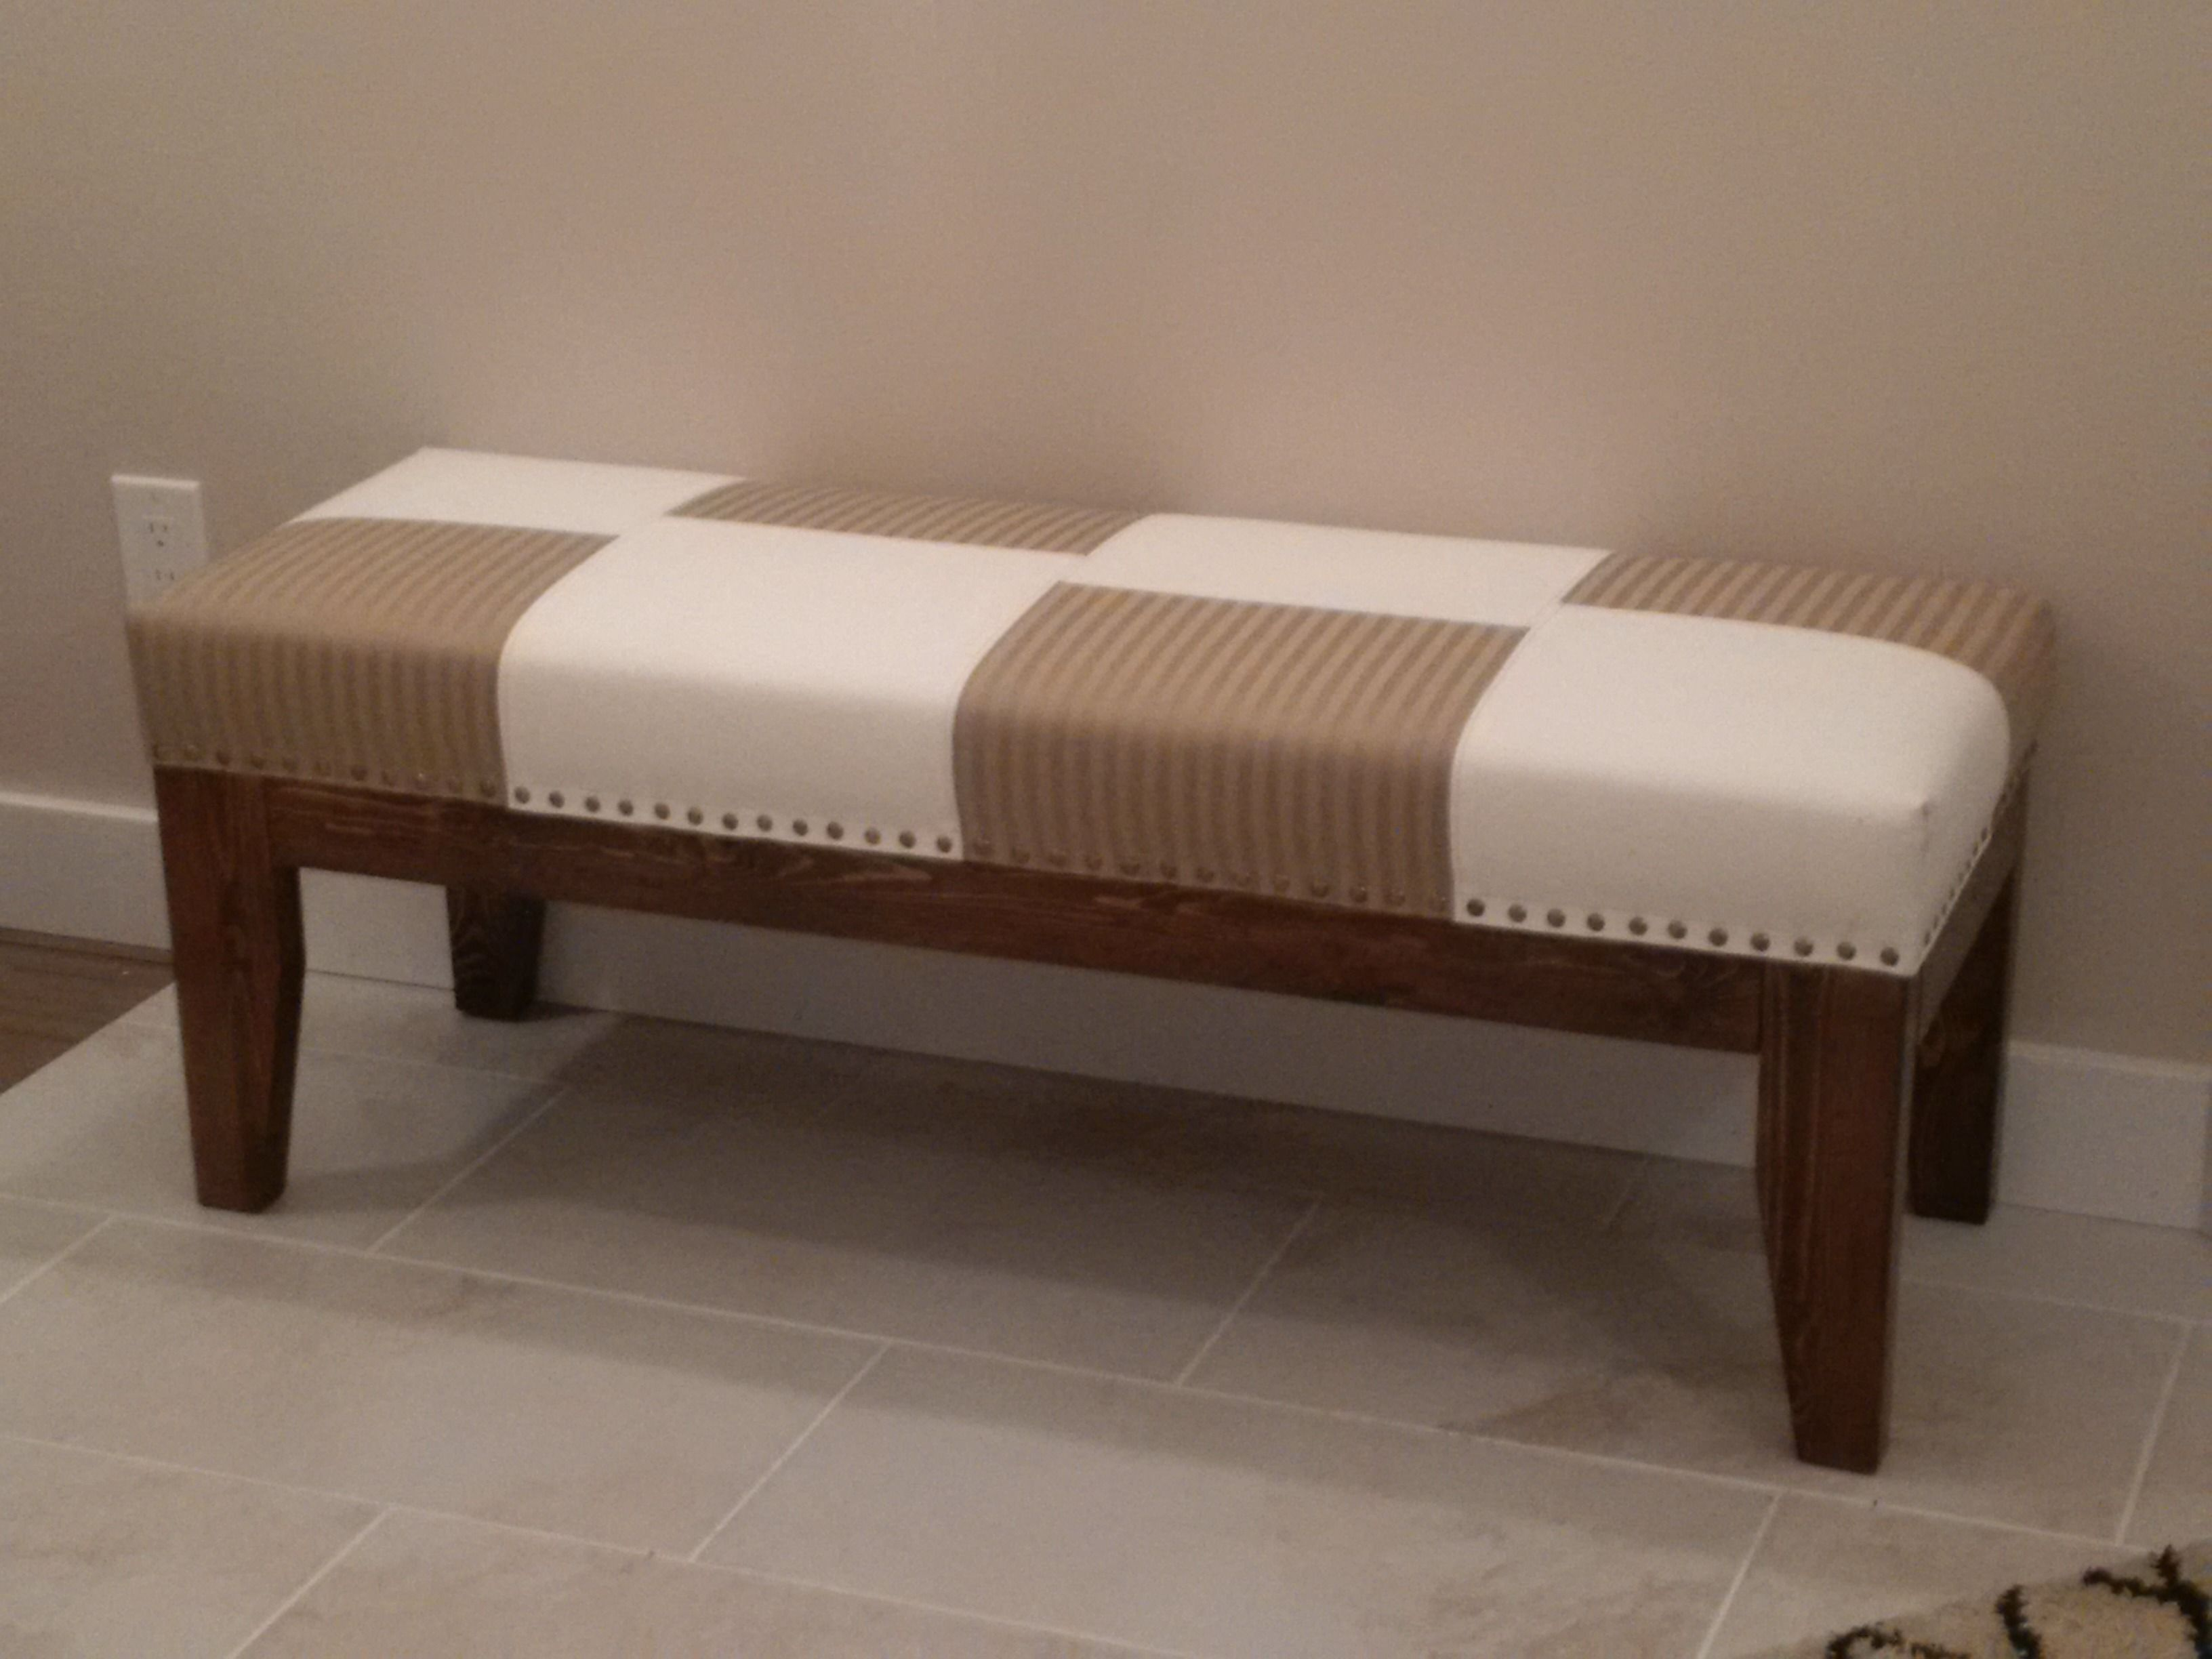 how to upholster a bench with storage